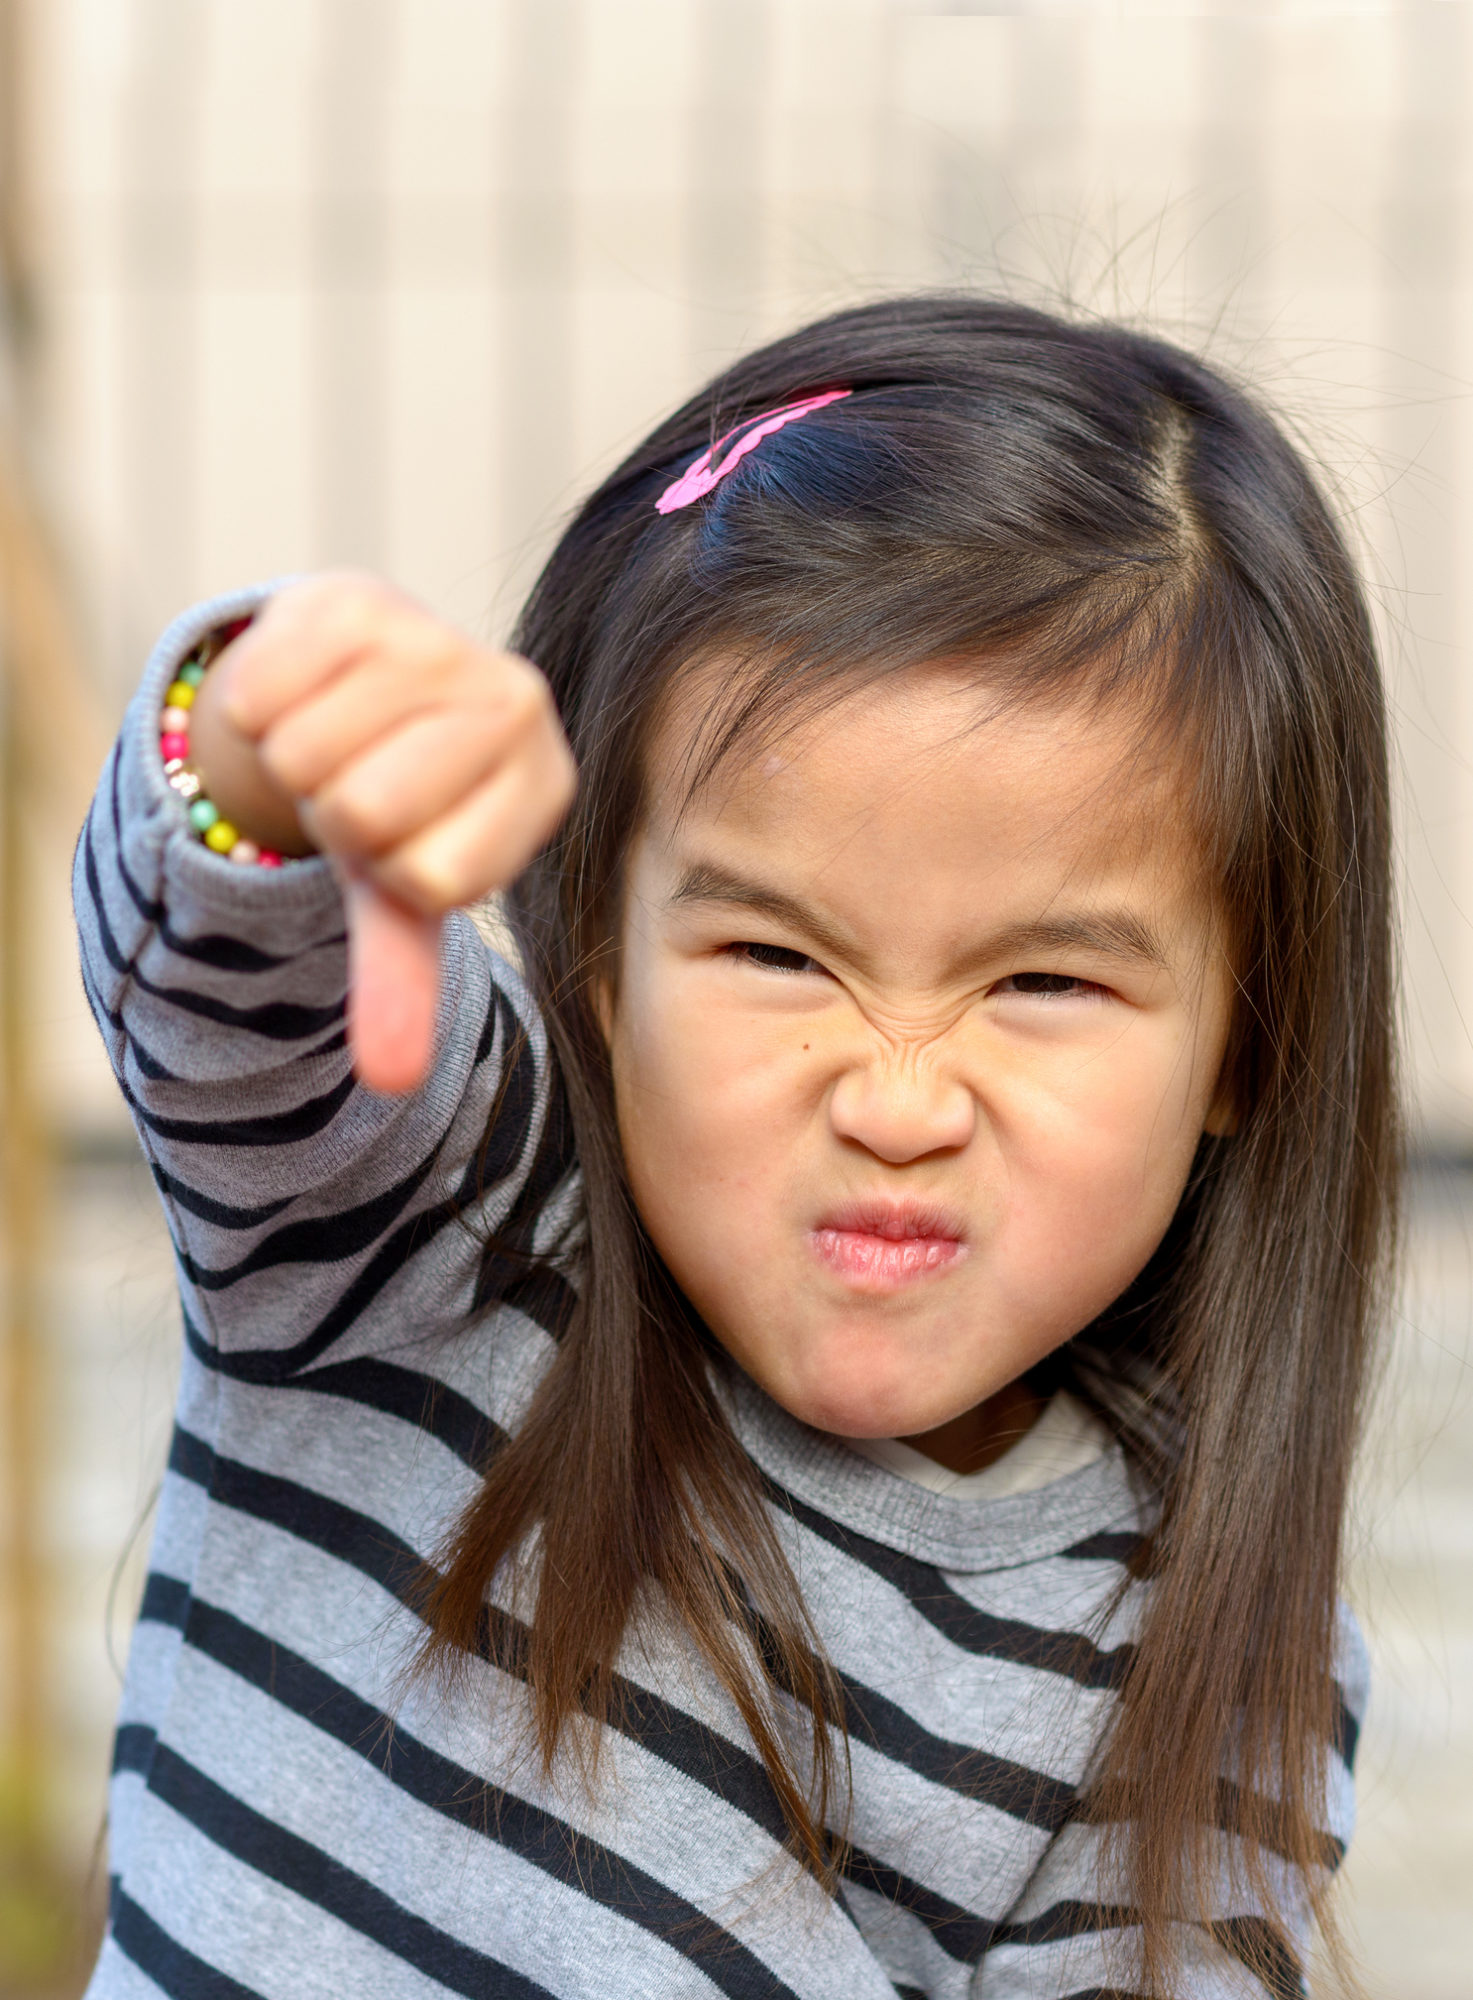 Portrait of a angry little Asian girl giving a thumb down gesture at the camera while pulling a fierce face in a show of childish aggression